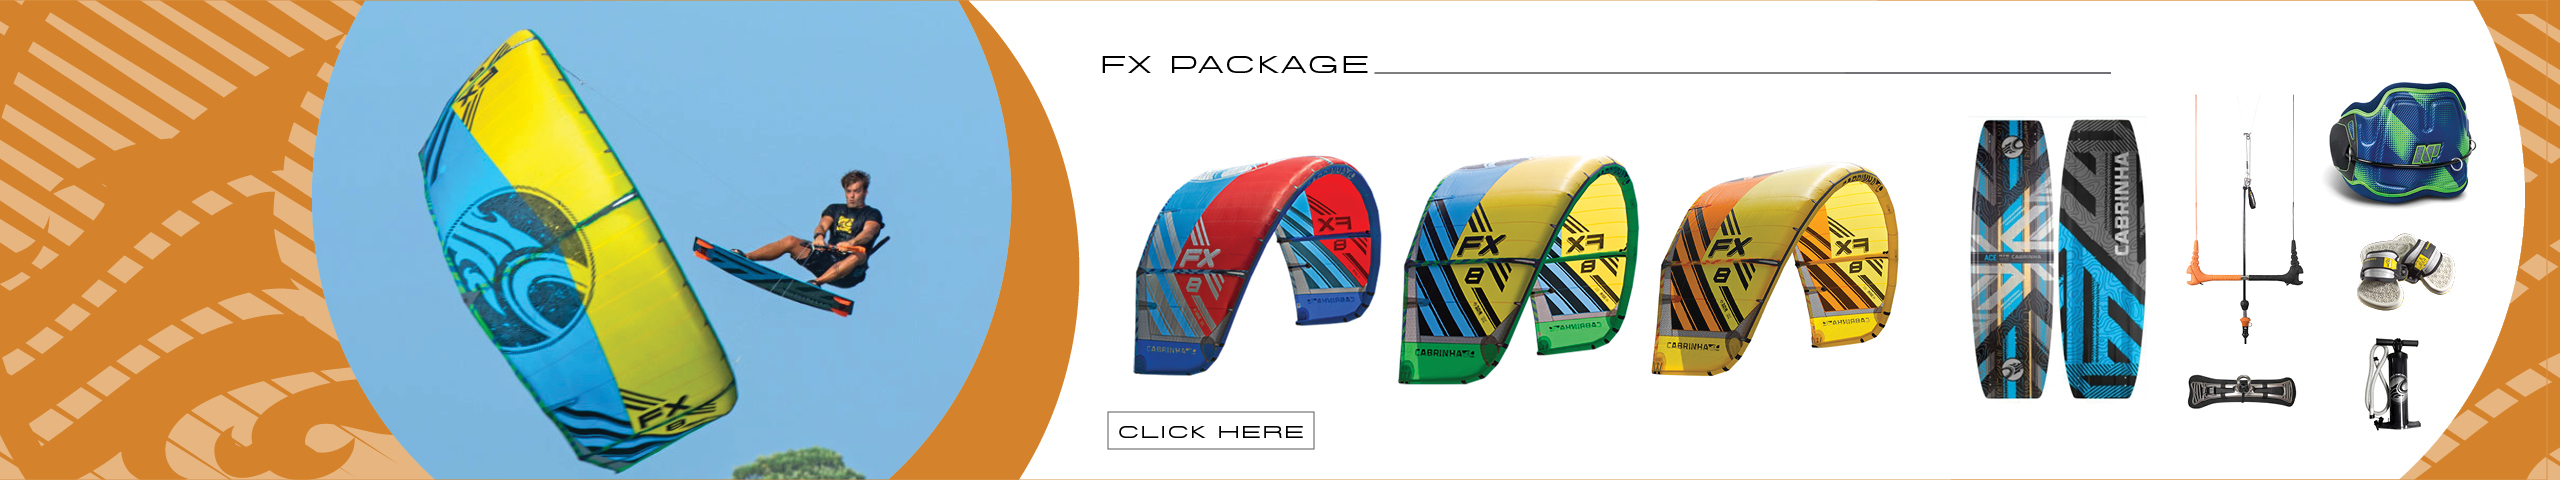 Cabrinha FX Kite Package